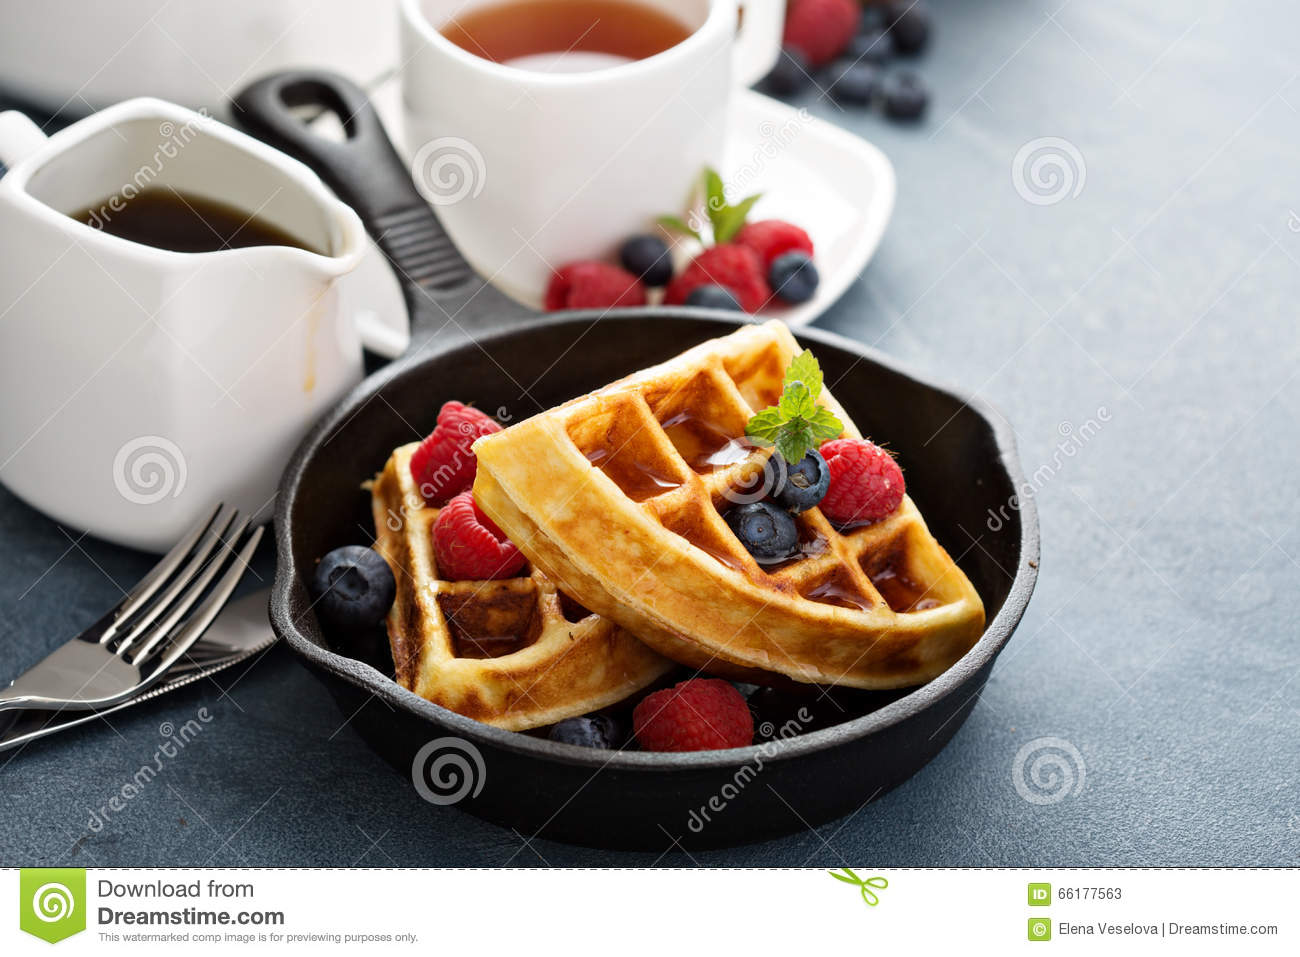 Freshly baked waffles with berries for breakfast